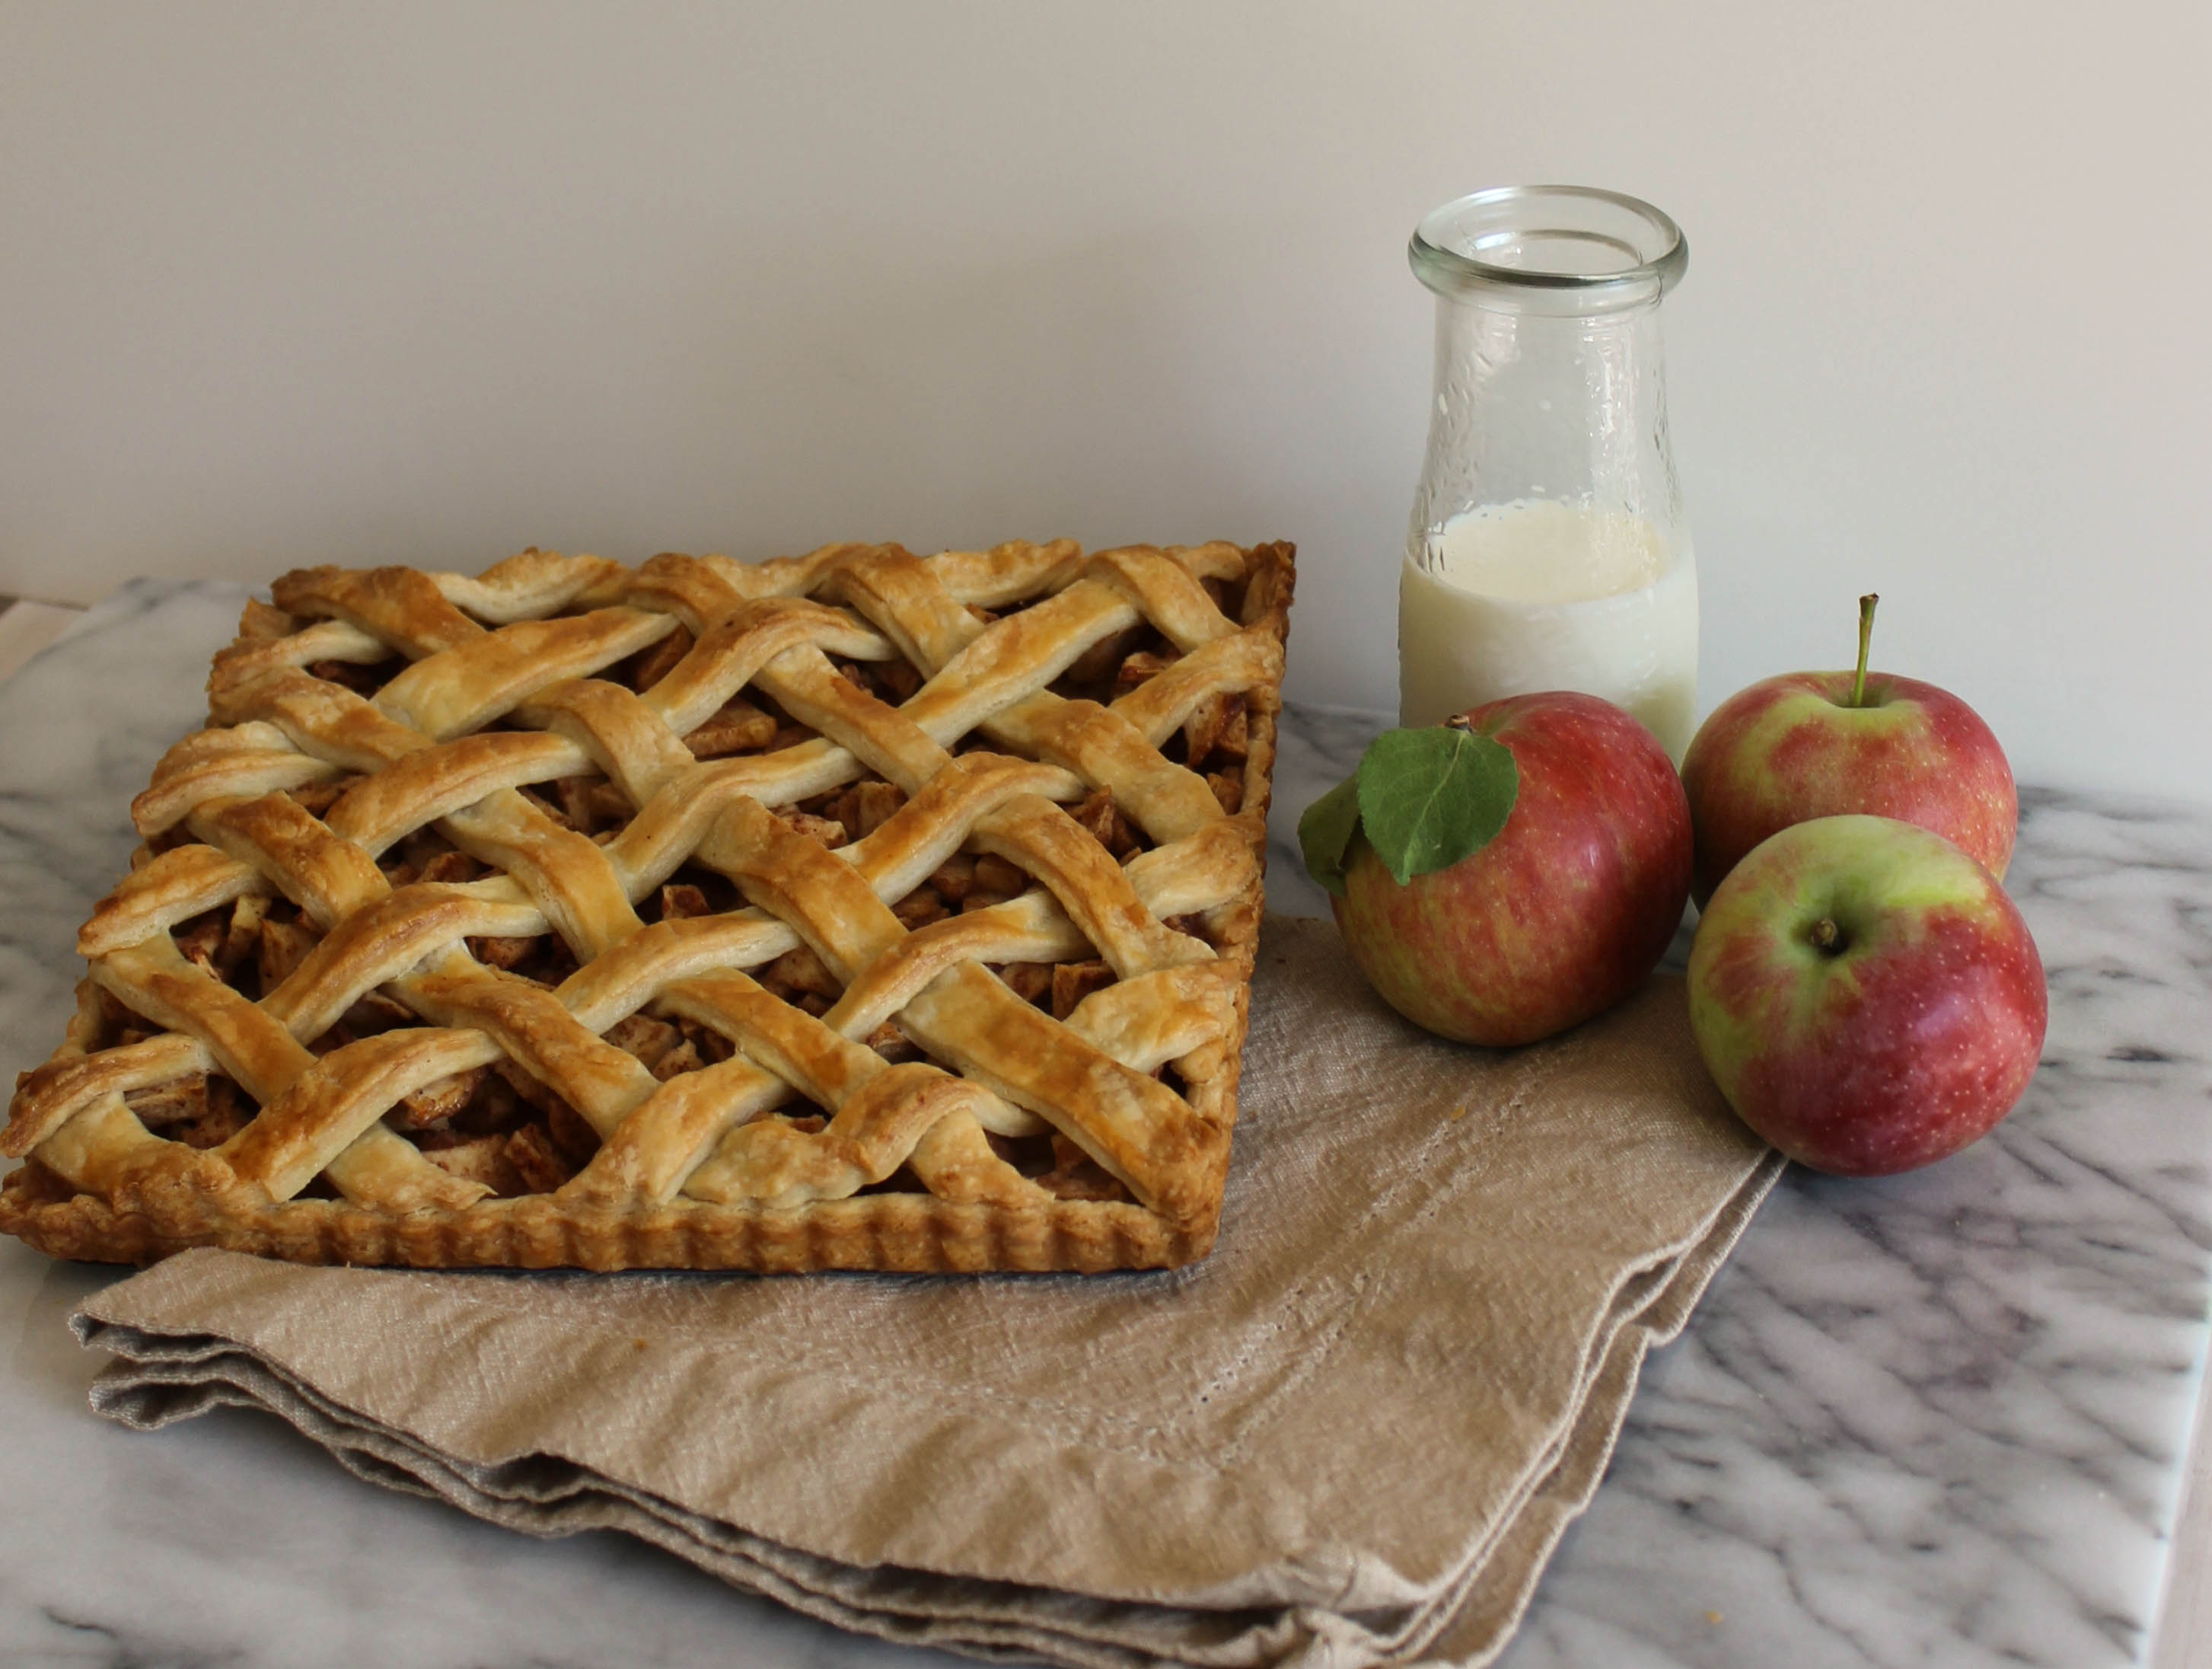 This apple tart features warm, cinnamon sprinkled apple, wrapped in a ...